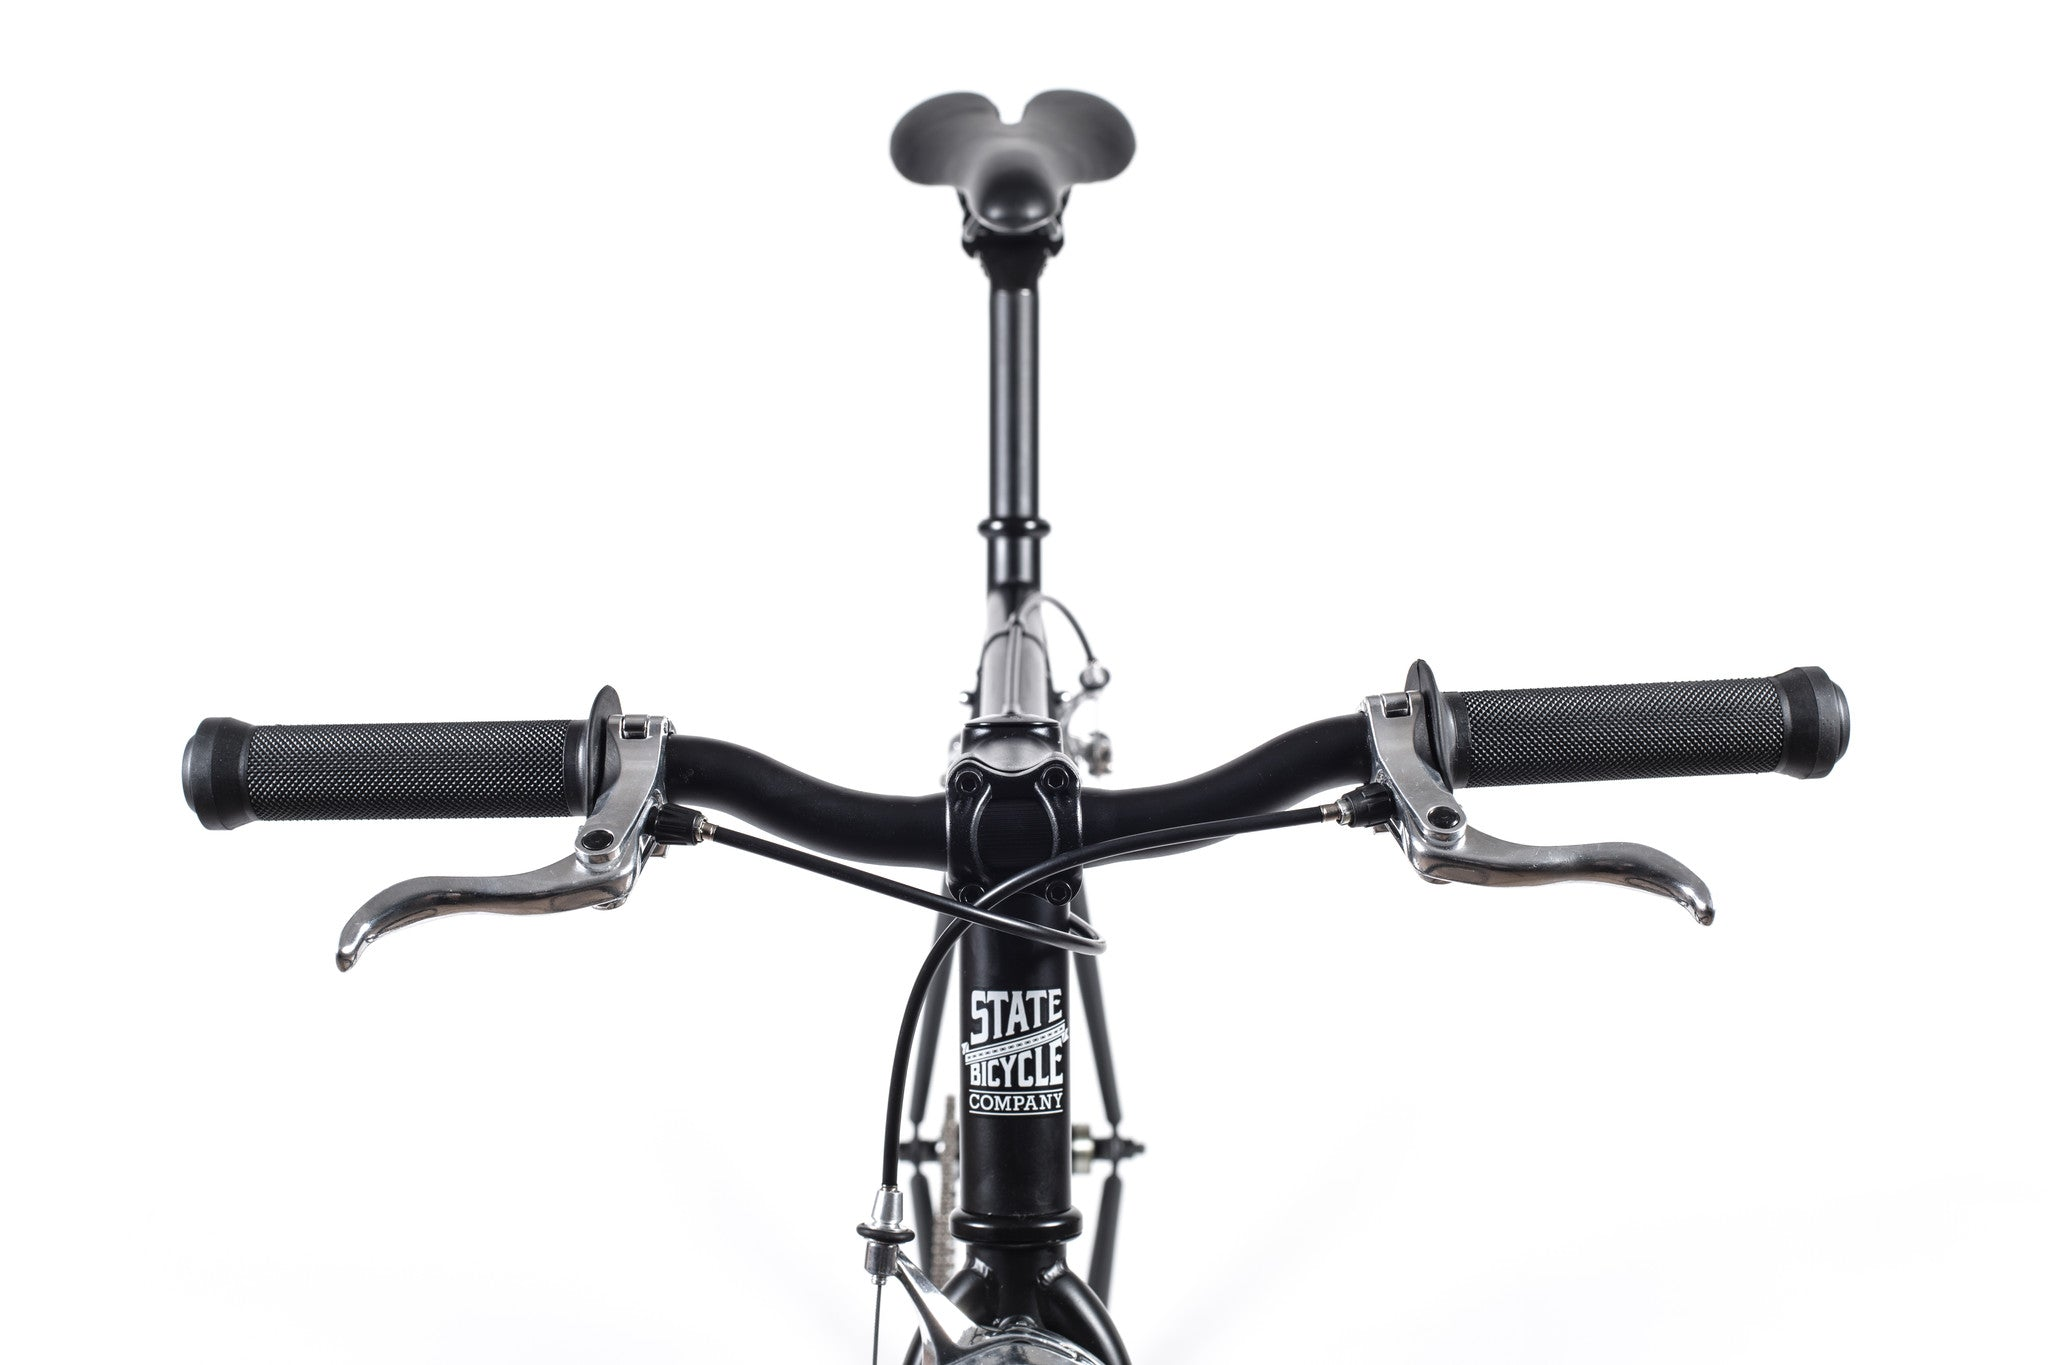 Black or Silver Pivot Forged Alloy Brakes 23.8mm Front and Rear State Bicycle Co - Brake Sets